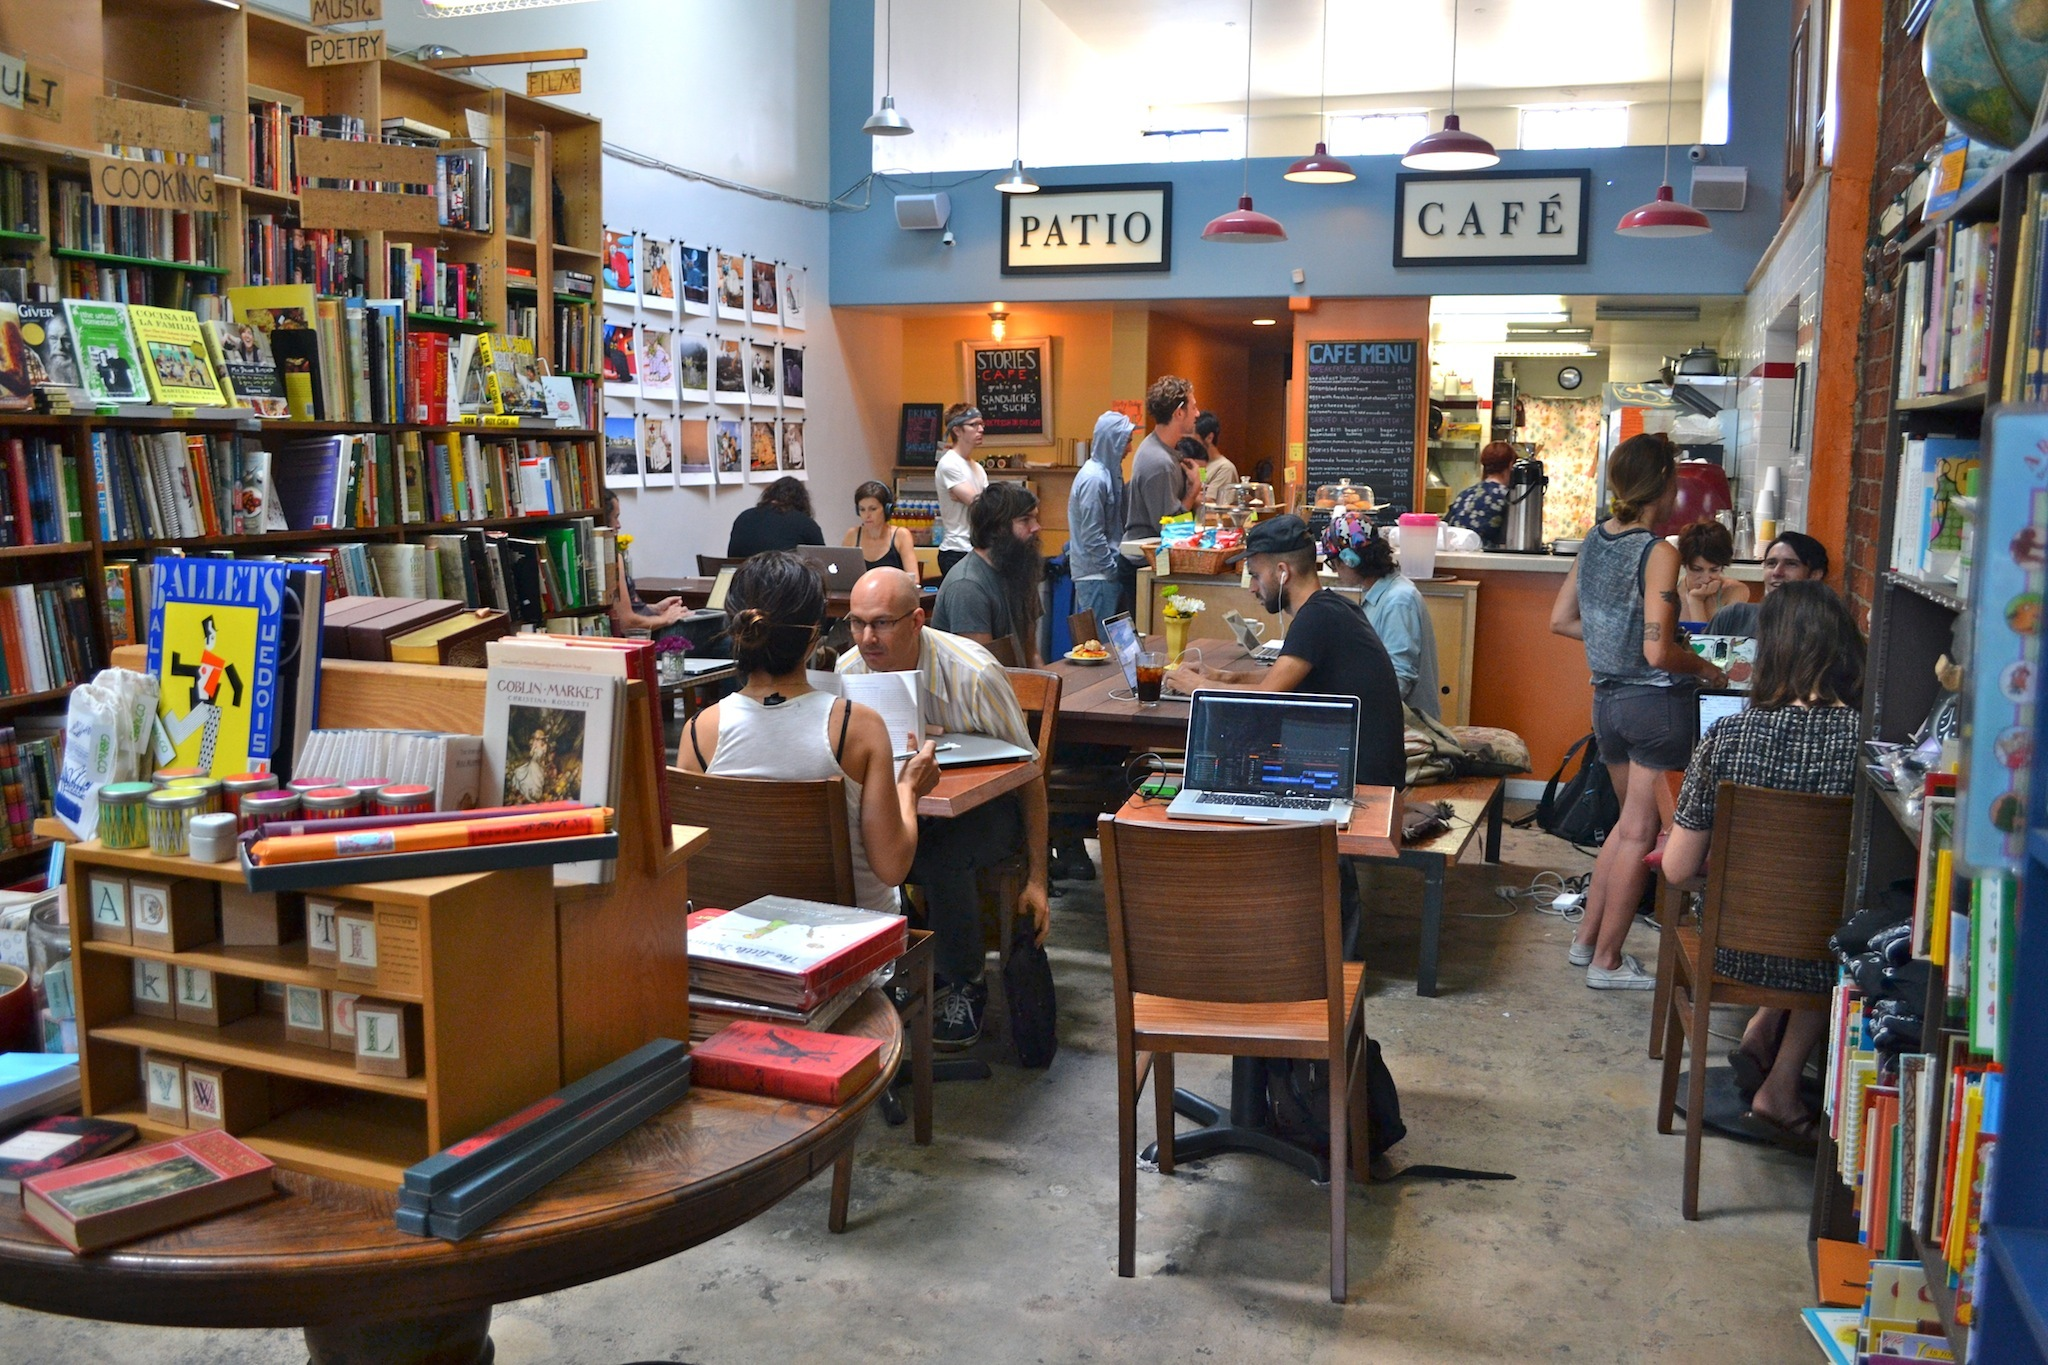 Stories Books and Cafe